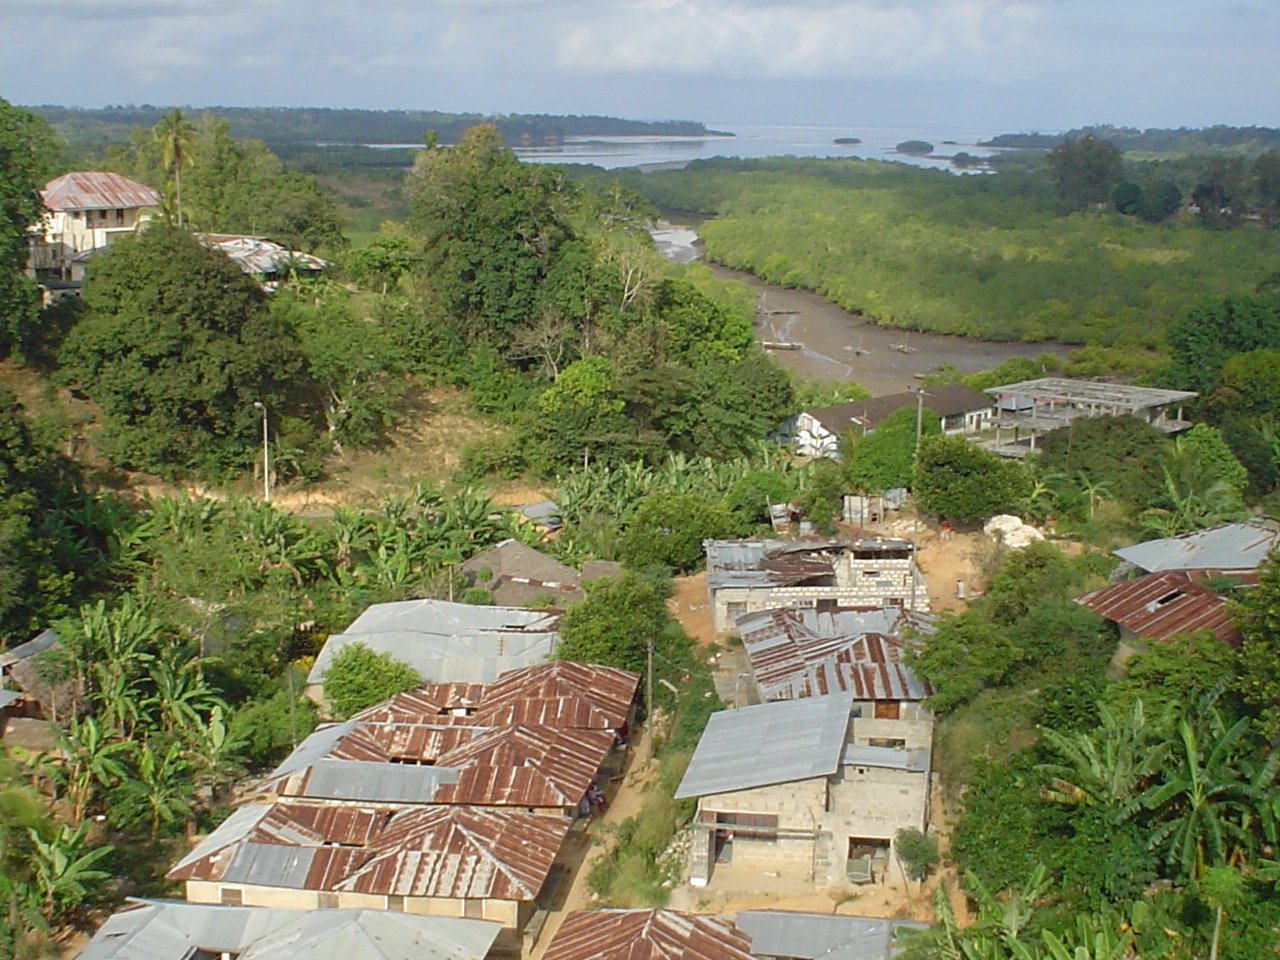 Pemba_island,_Tanzania._View_from_Chake_Chake_town_center_over_the_mangroves_towards_the_sea.JPG